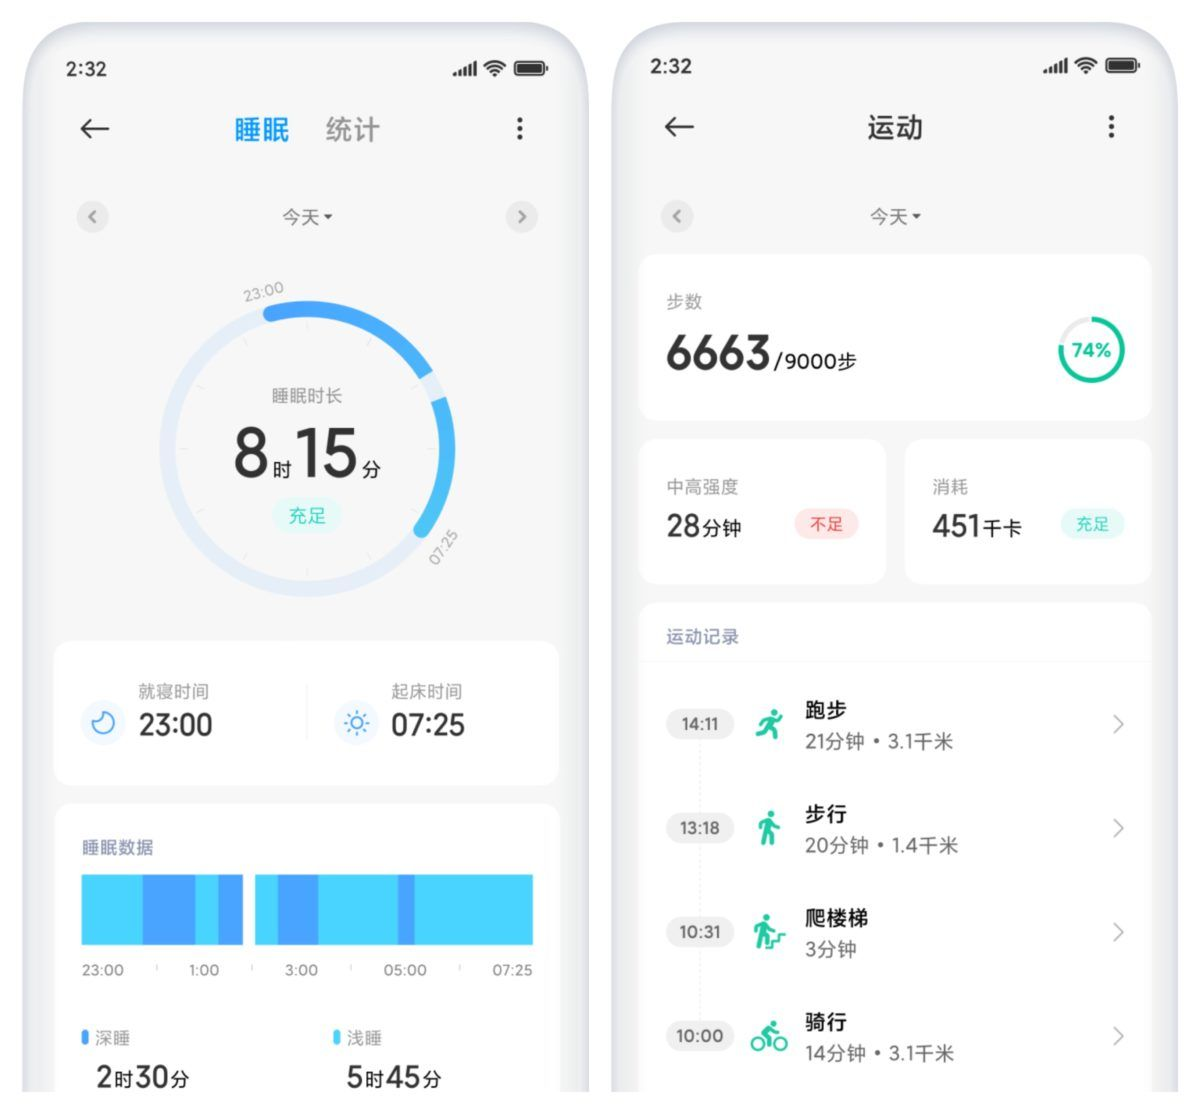 With MIUI 12, users will be able to record activities like walking, running, cycling, and climbing stairs, by just keeping their phones in their pockets